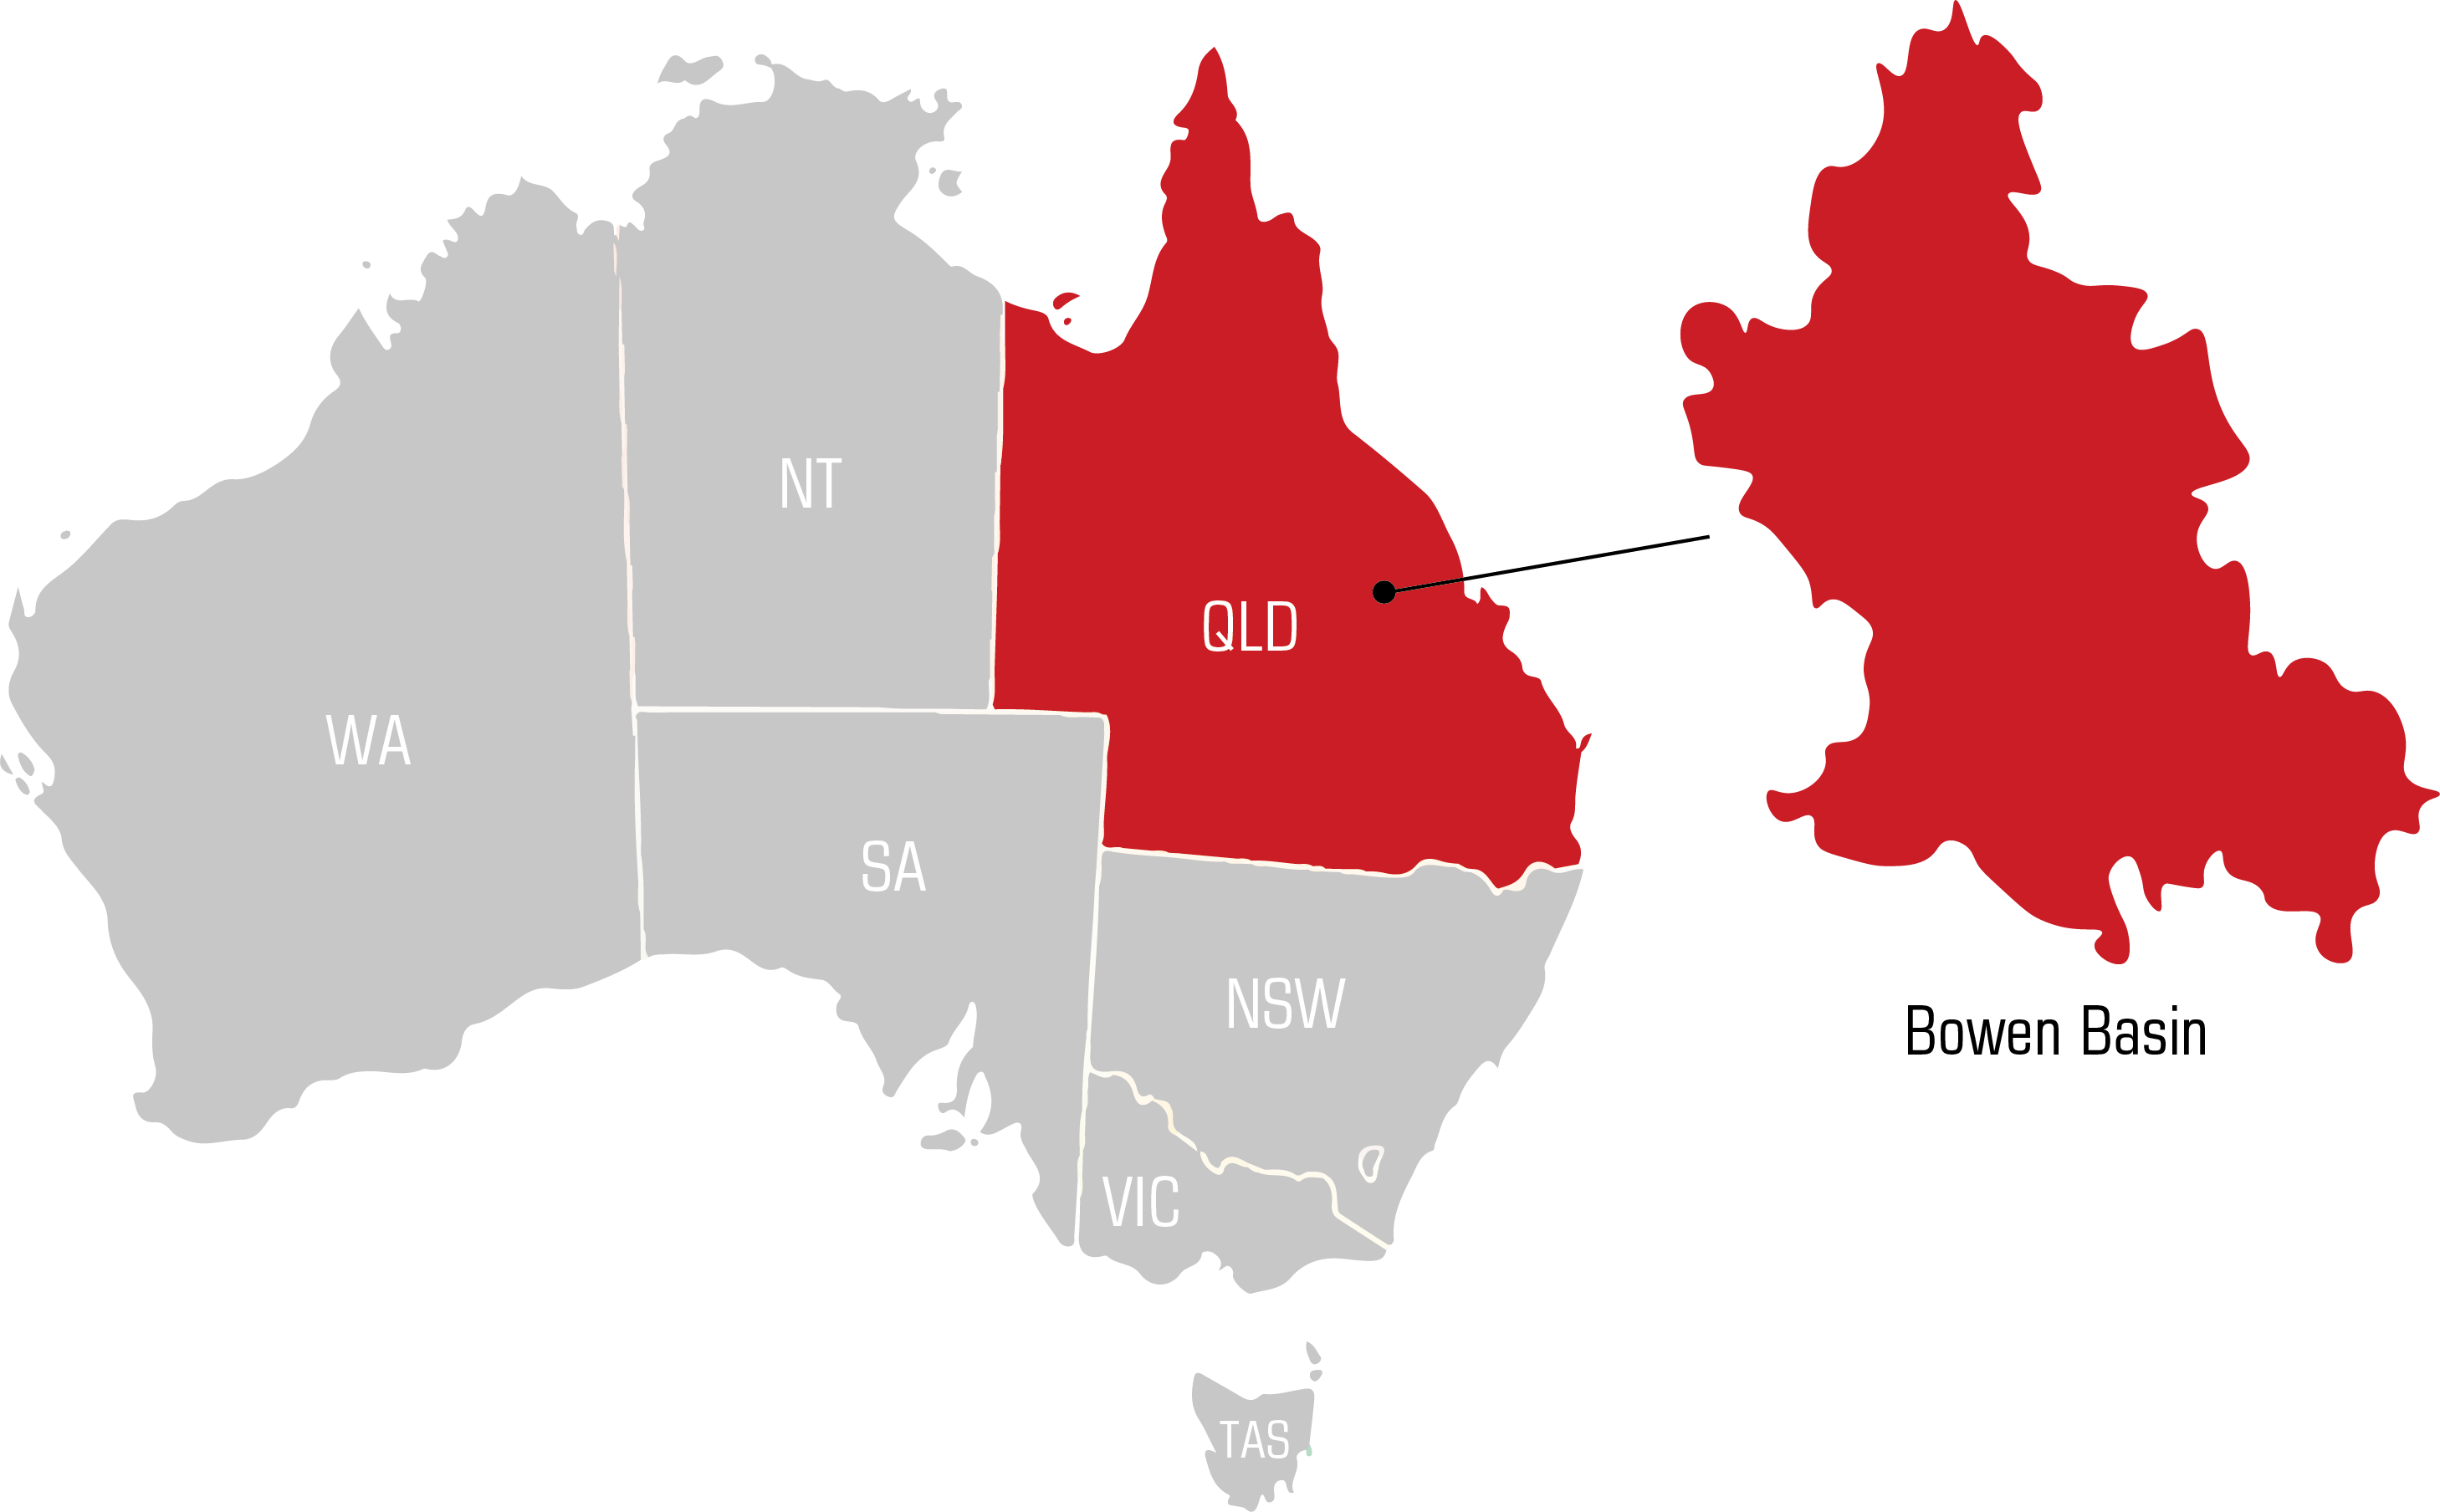 QWS bowen basin Welding Supplies map